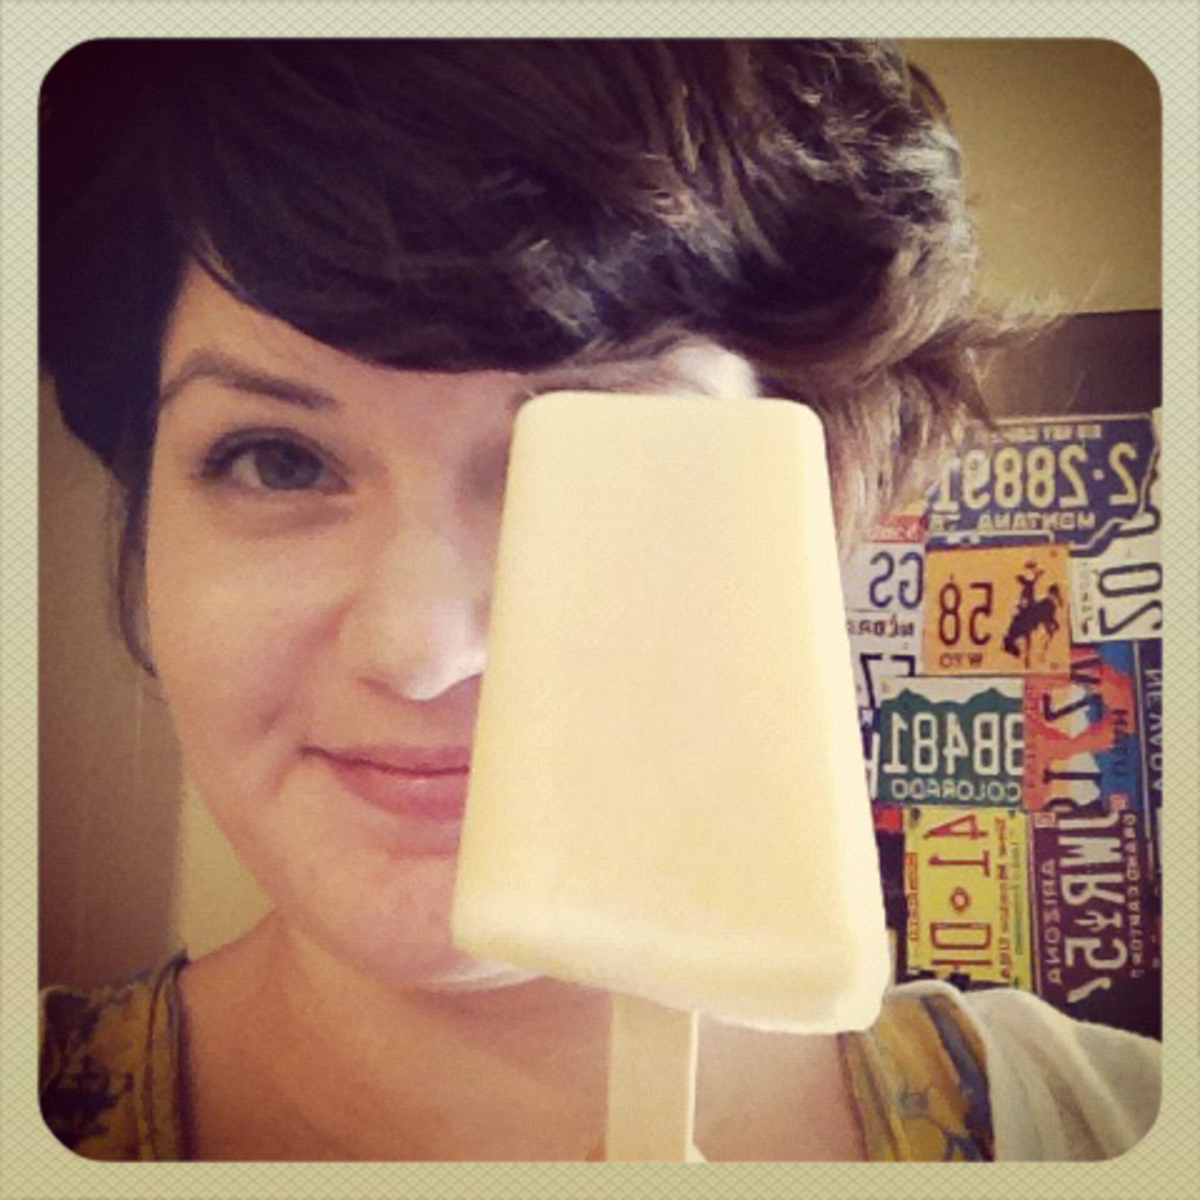 eating my peach popsicle